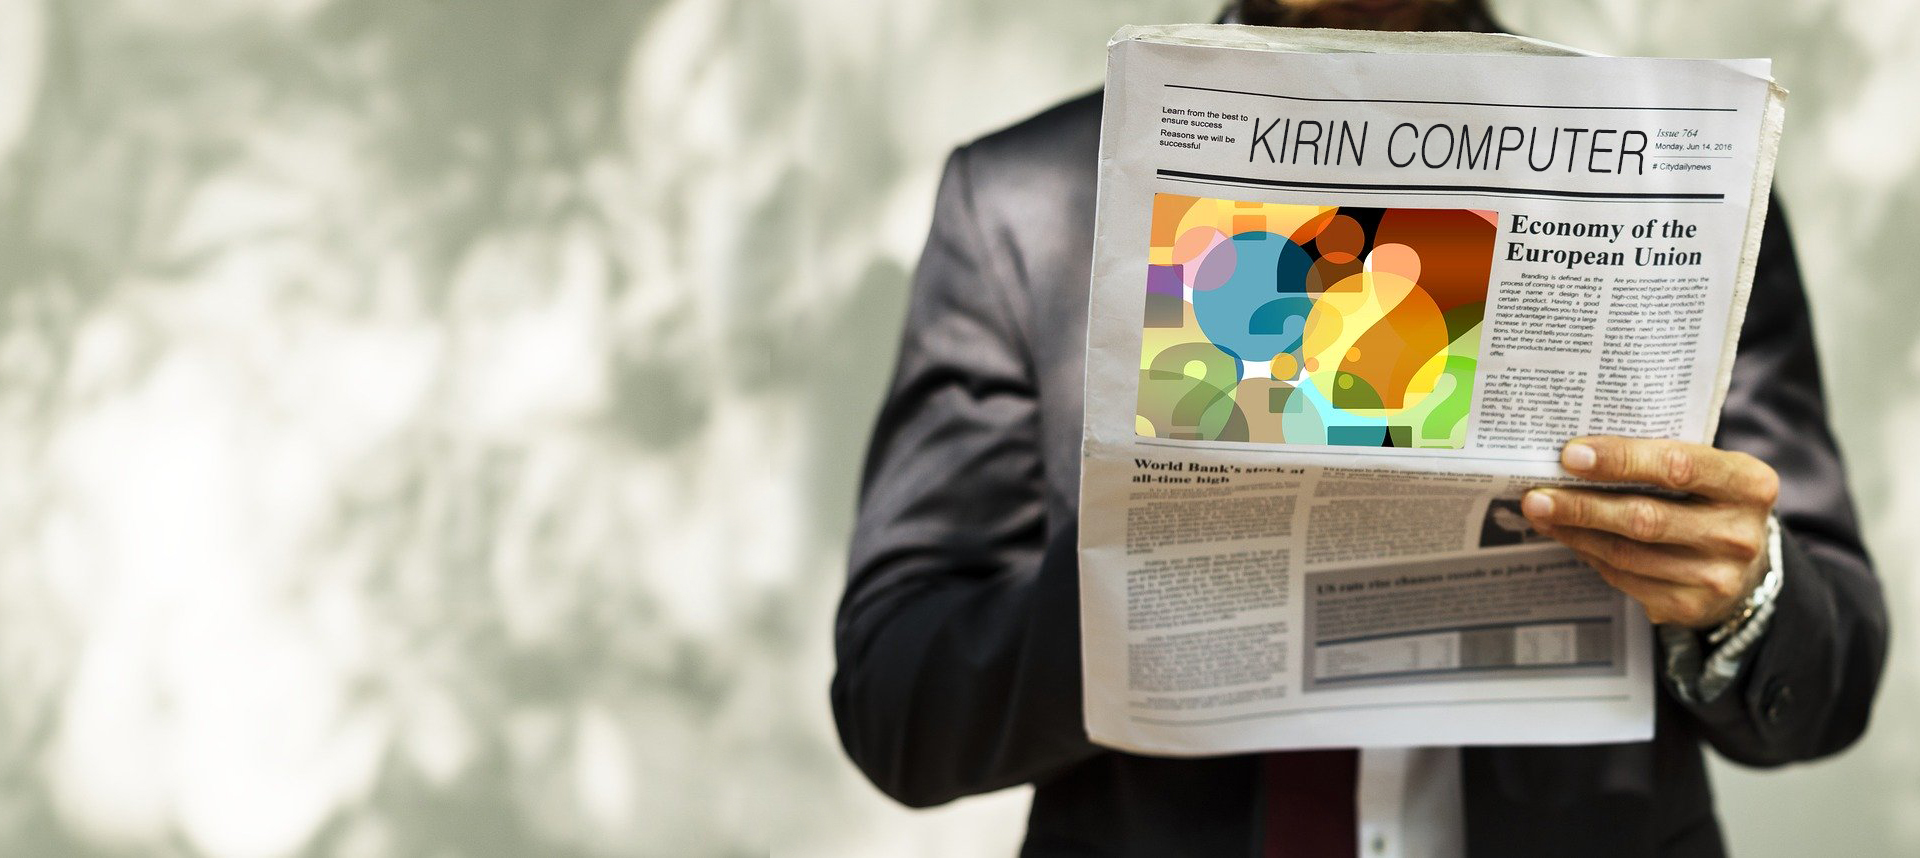 You can see the e-catalogue of Kirin Company.